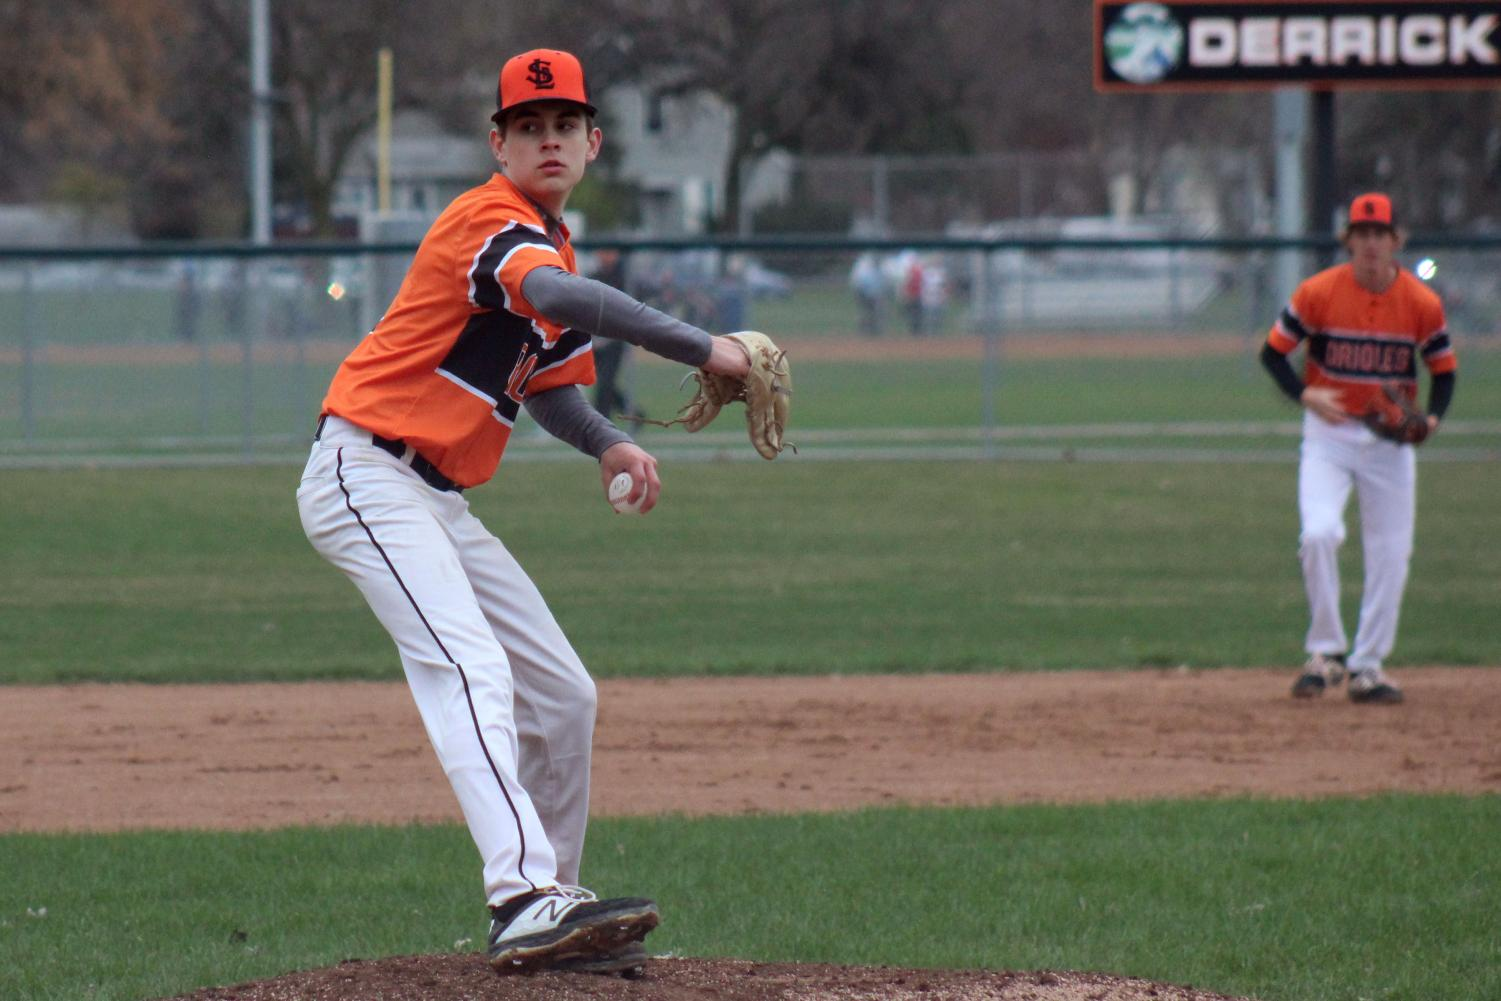 Freshman Kristopher Hokenson pitches against Robbinsdale Cooper. Hokenson broke Dakota Park field records for being the first freshman to pitch a 10-0 game. This was Hokenson's first time pitching for the Park varsity team.